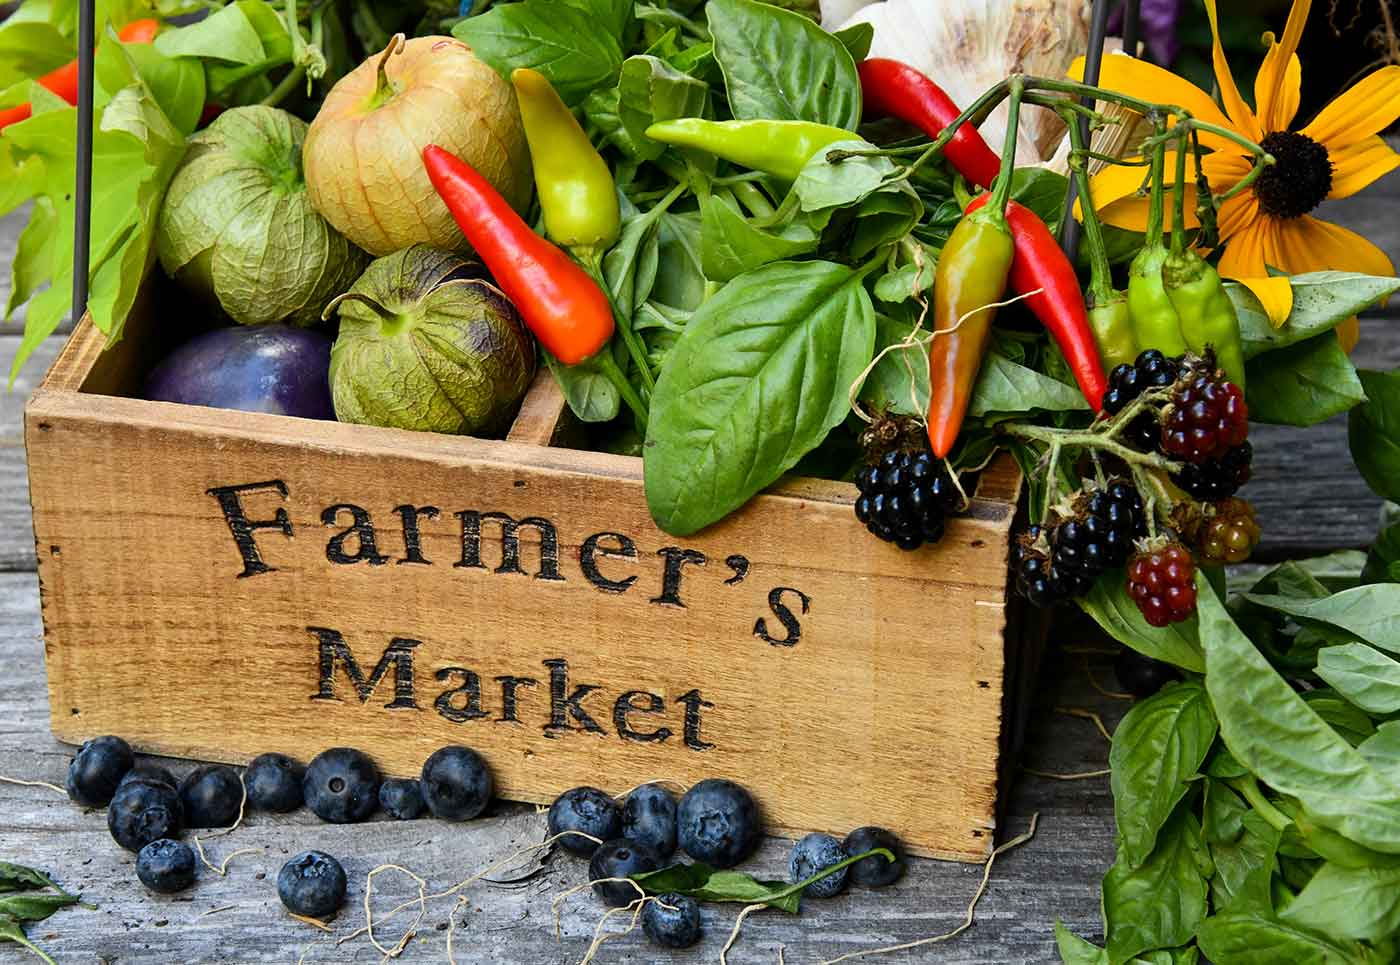 Farmer's market box with vegetables